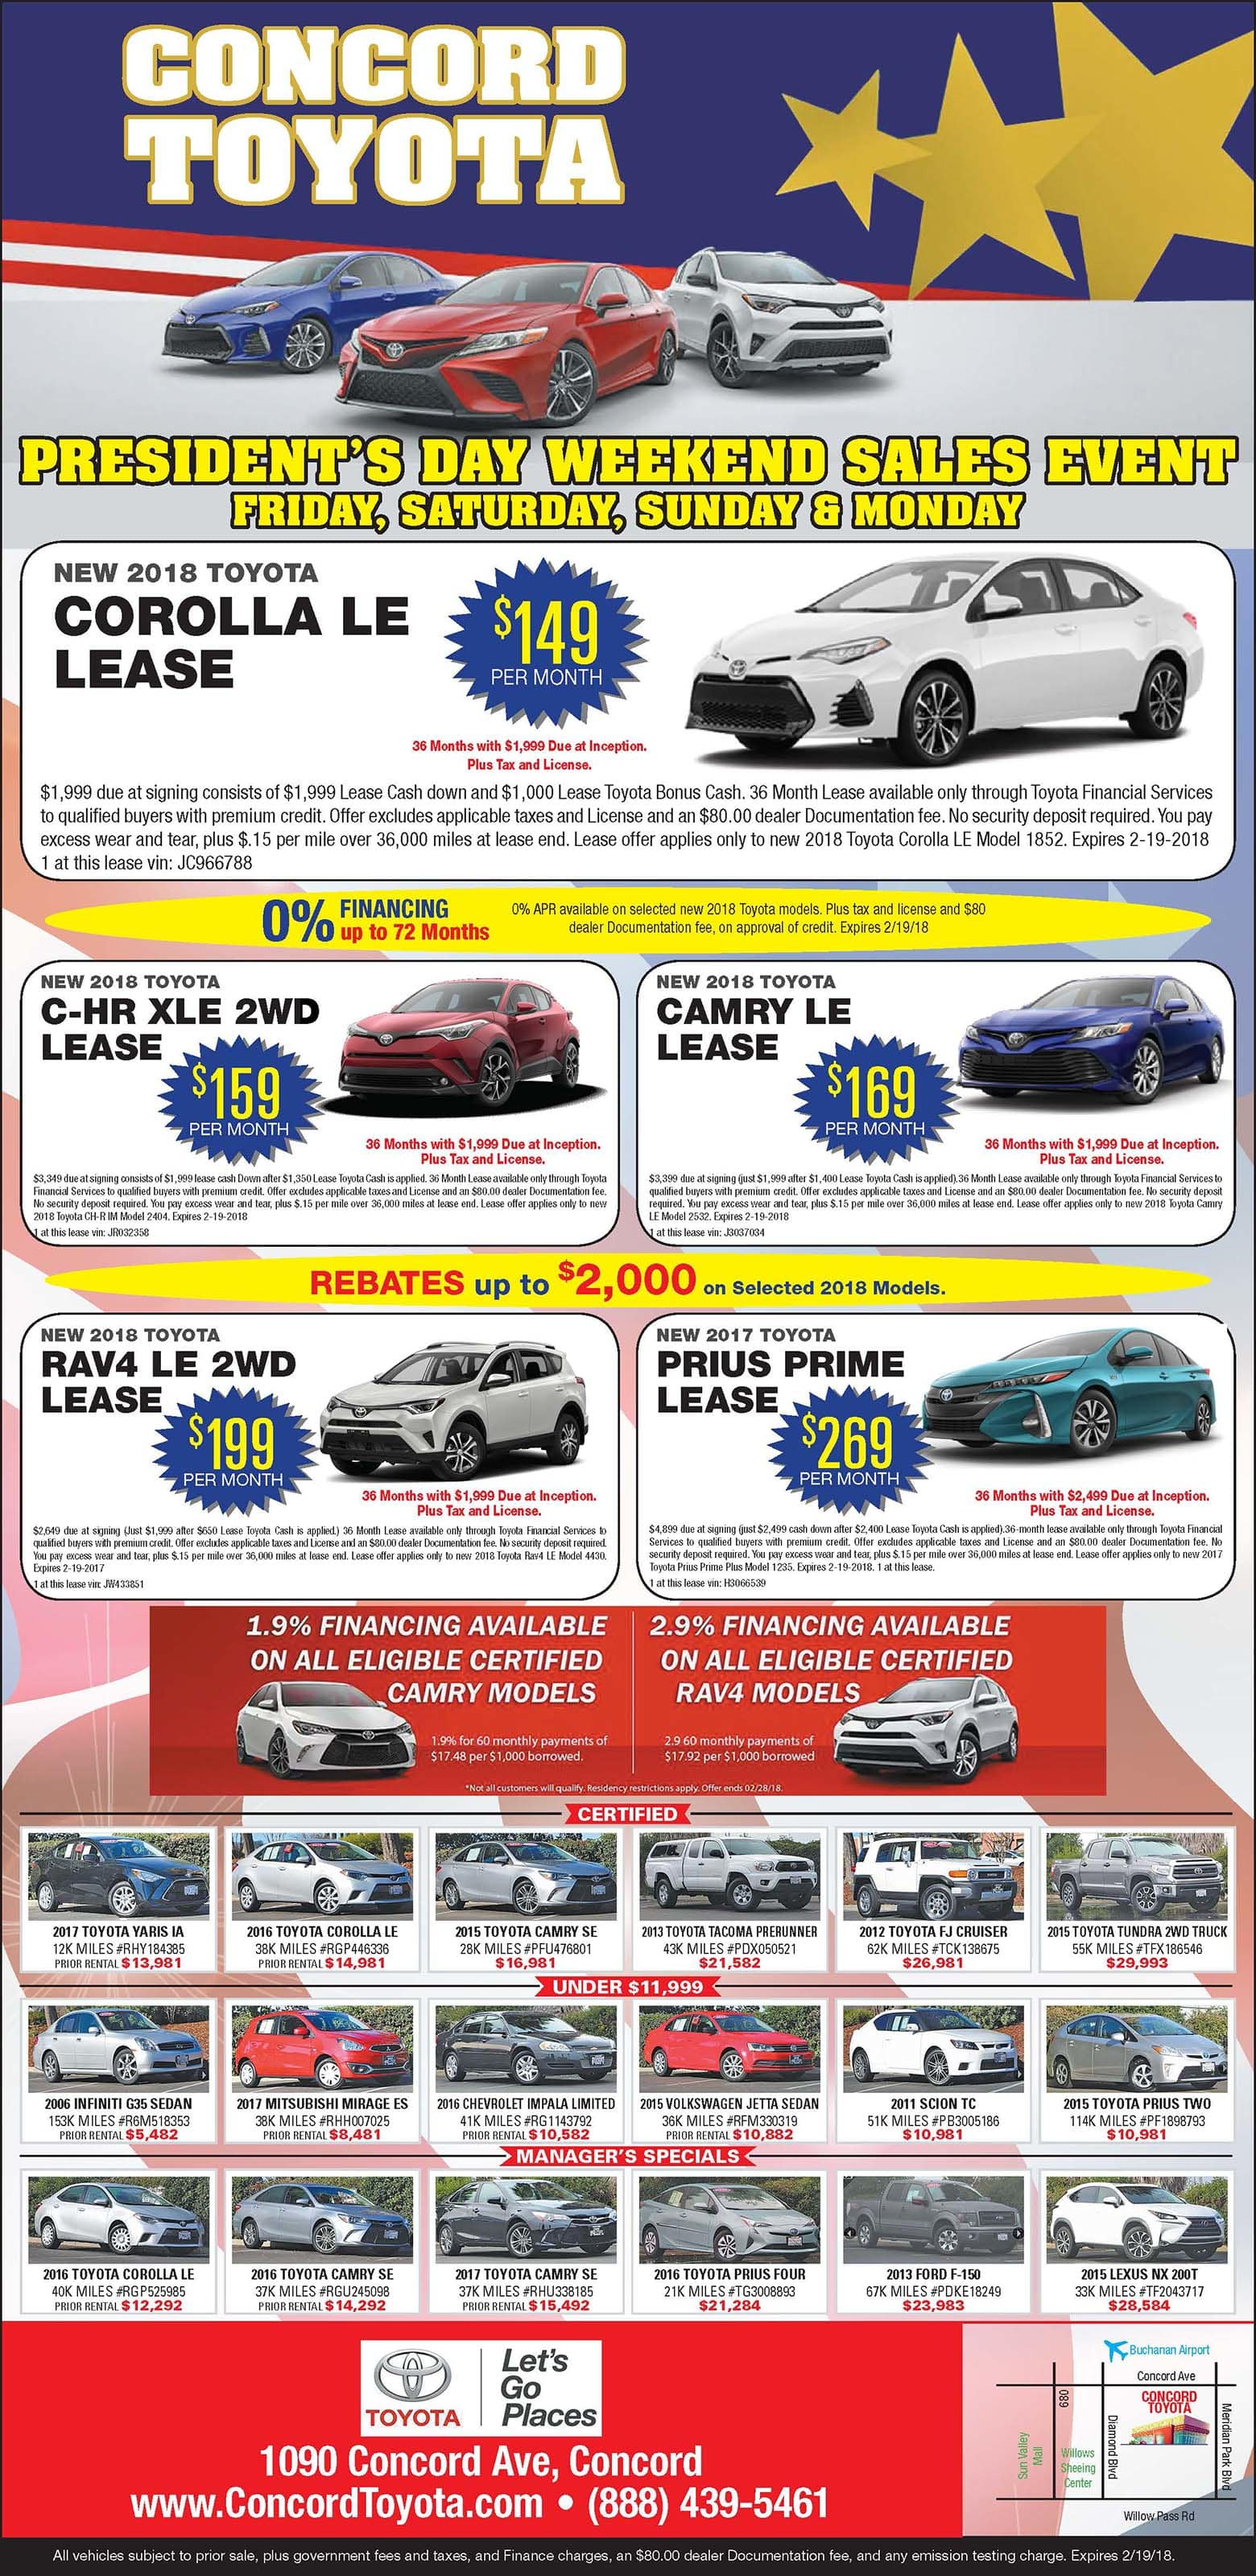 Cars for Sale Near Me Monthly Payments Luxury Concord toyota Print Ad Specials